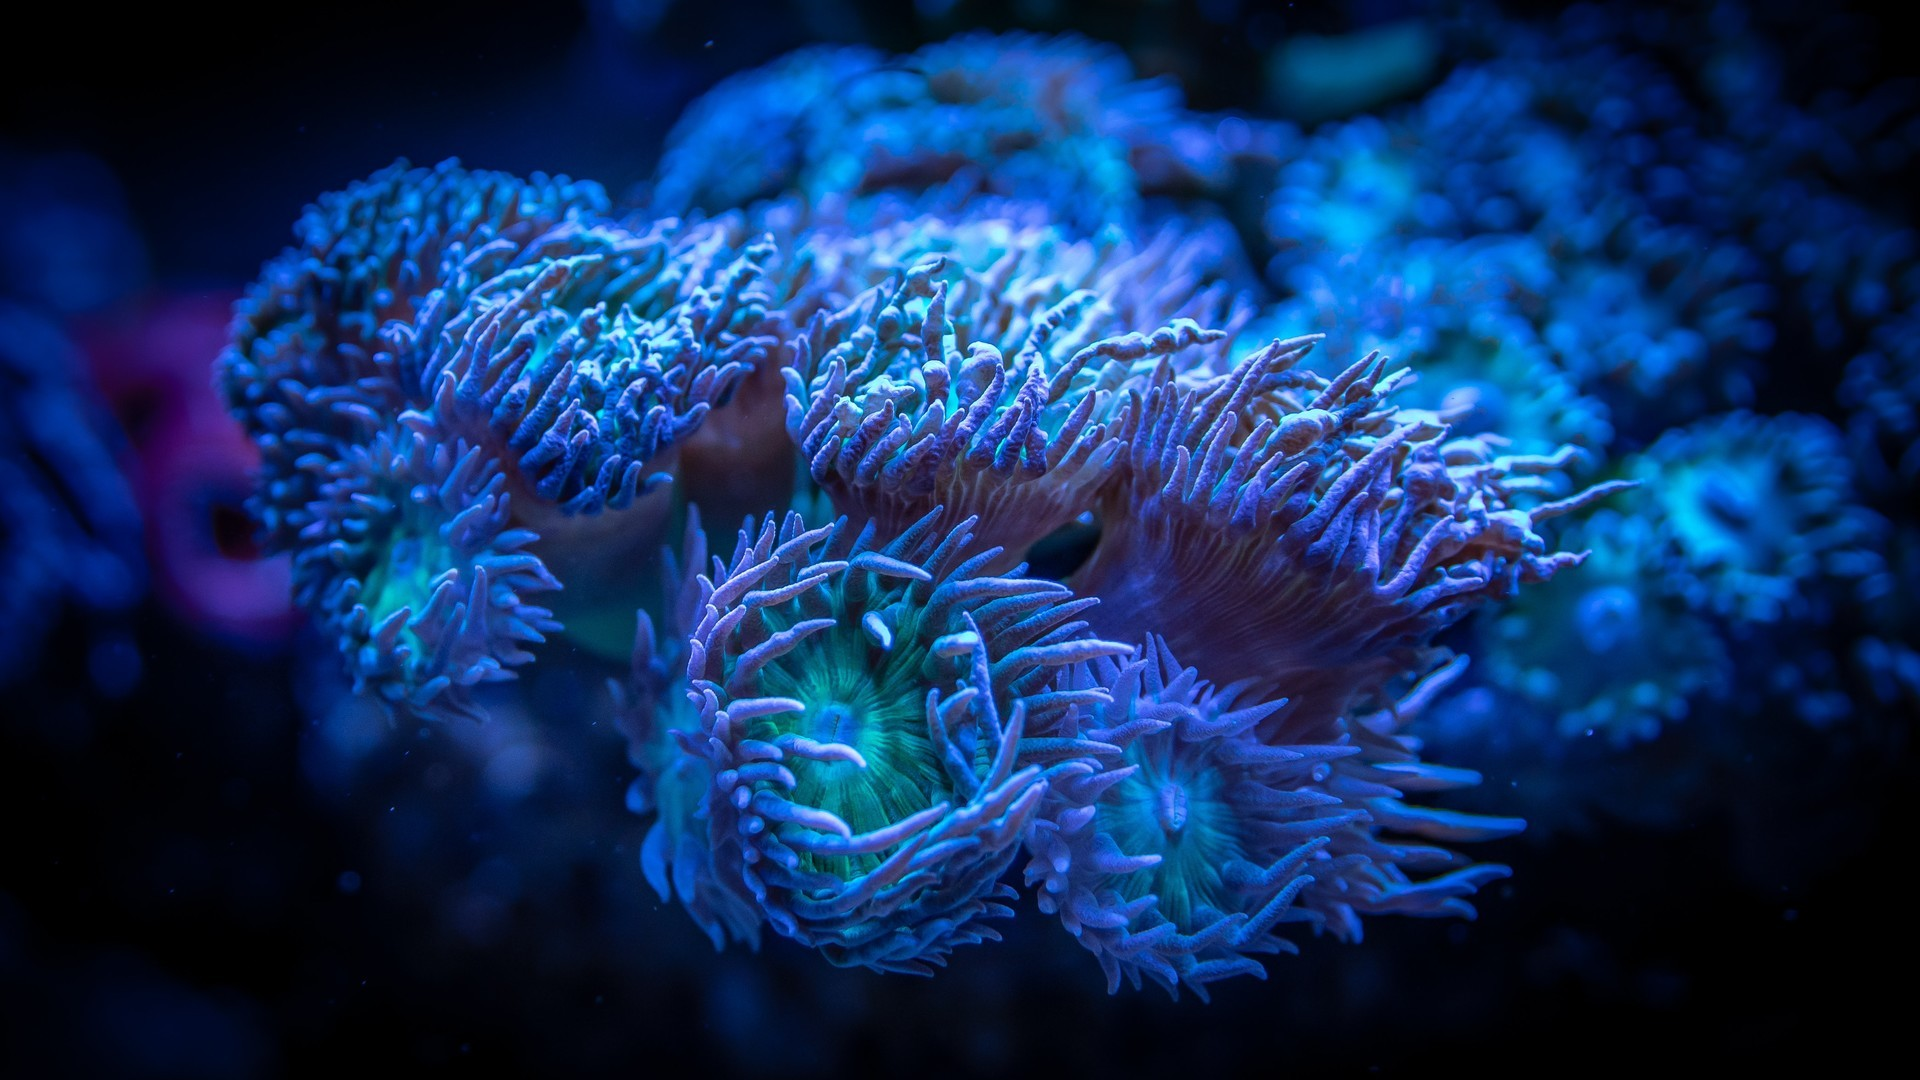 The most beautiful underwater world picture wallpaper